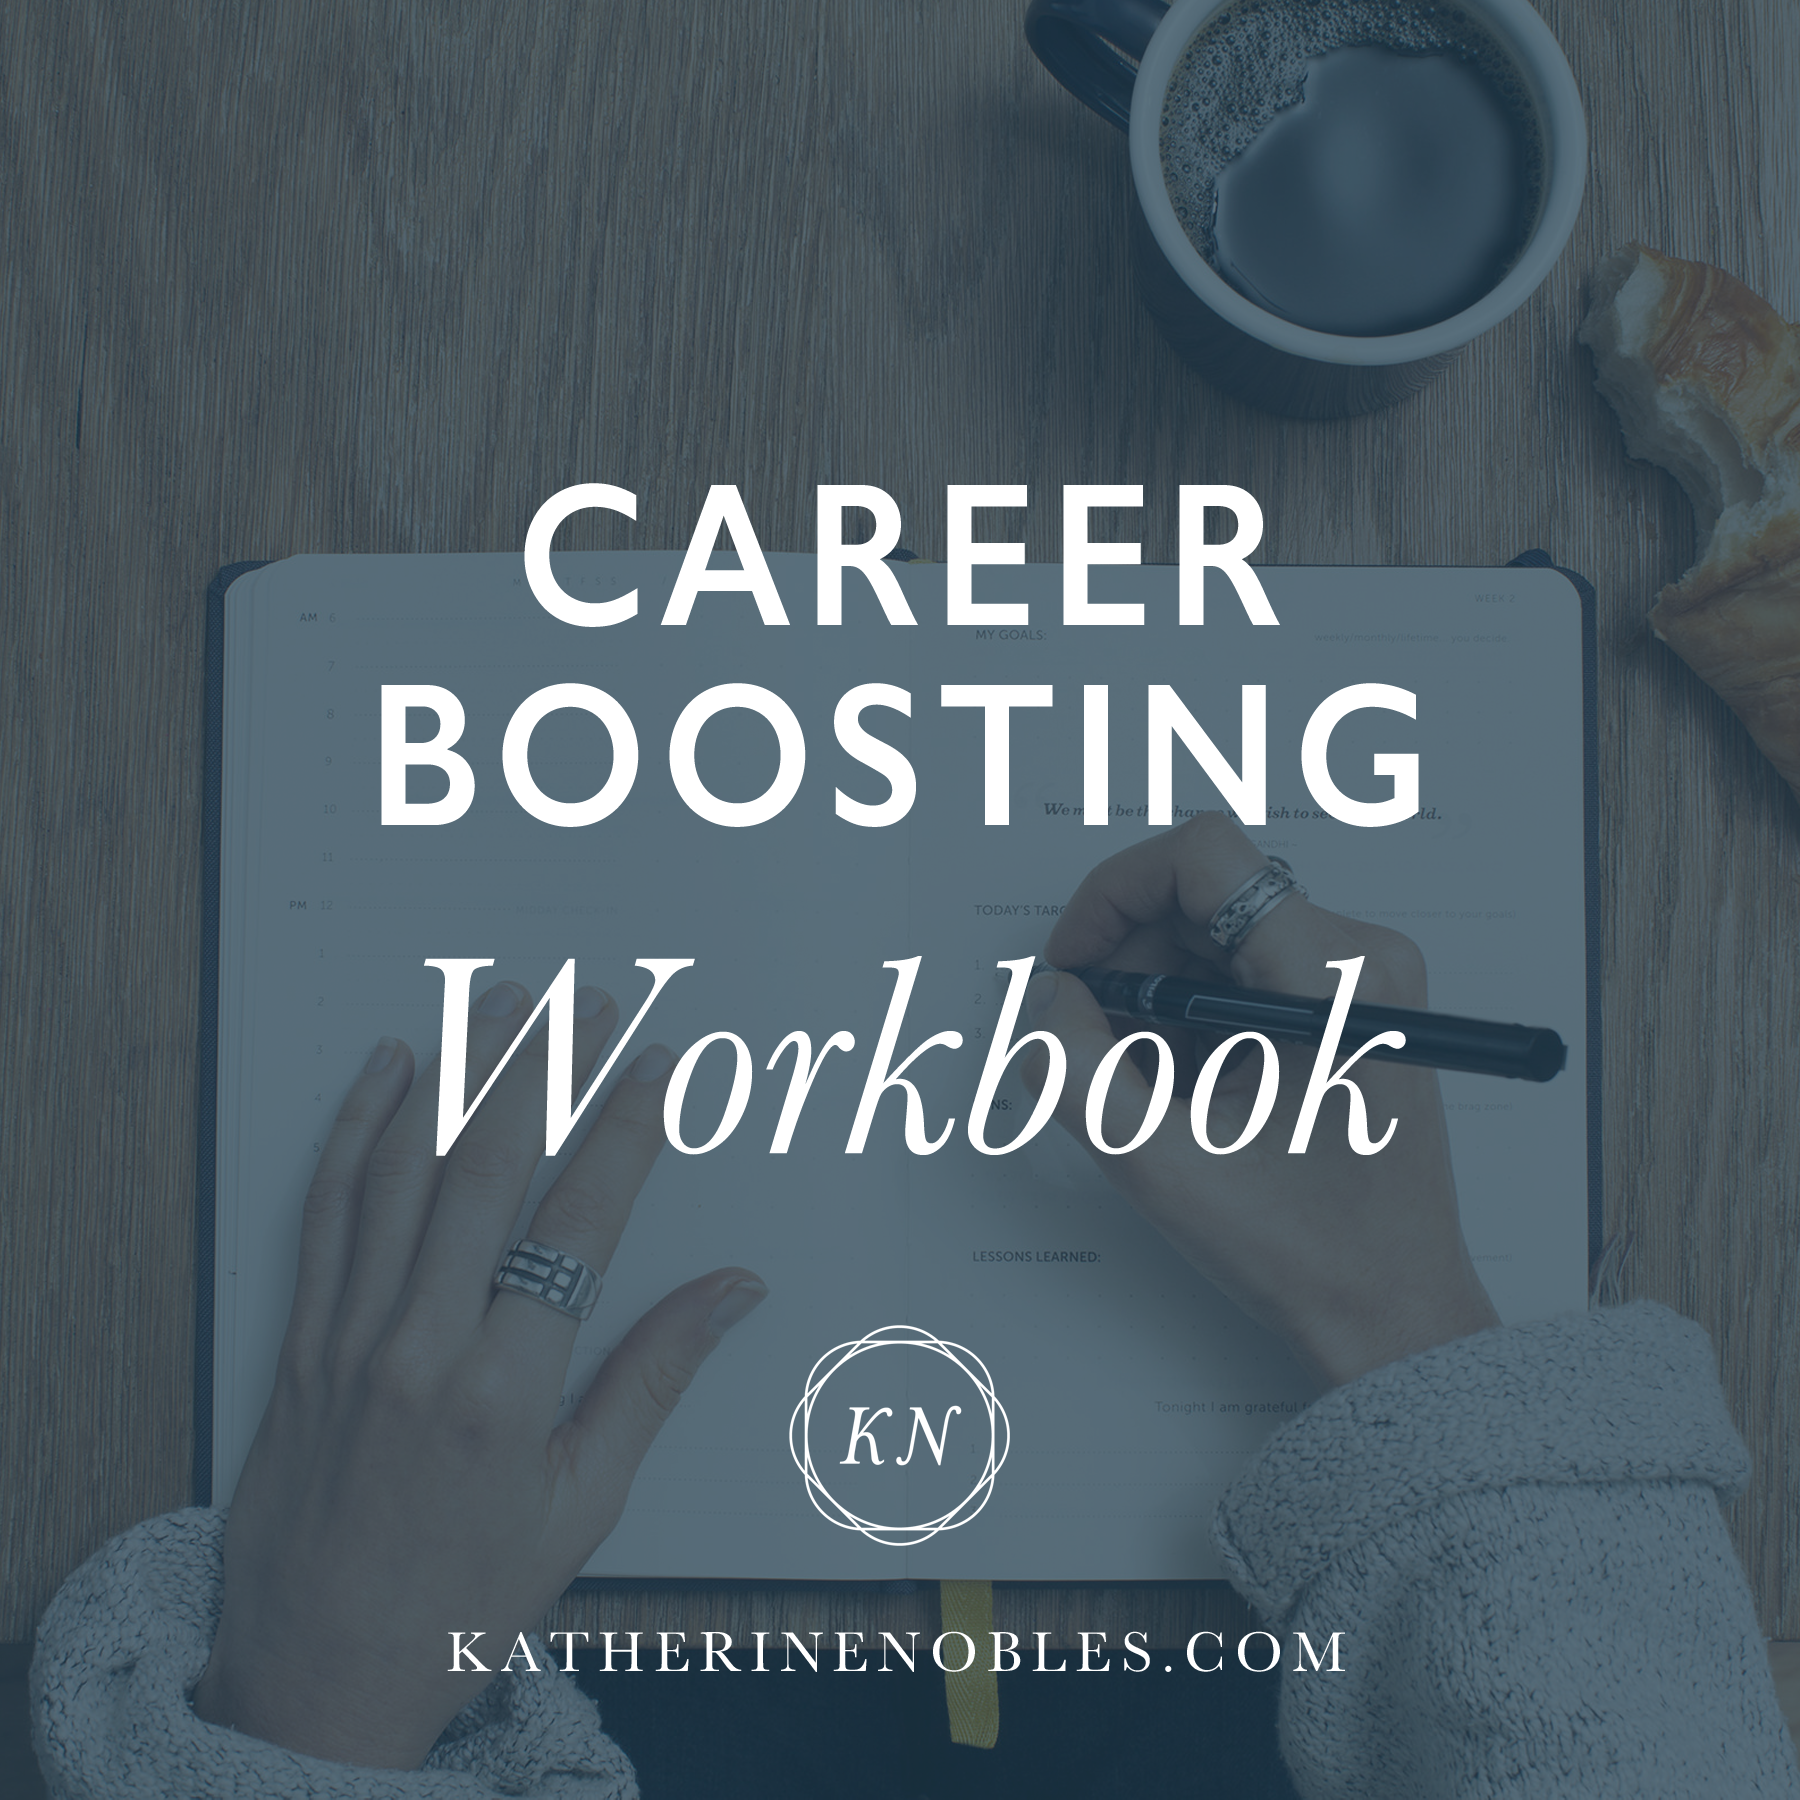 Career Boosting Workbook